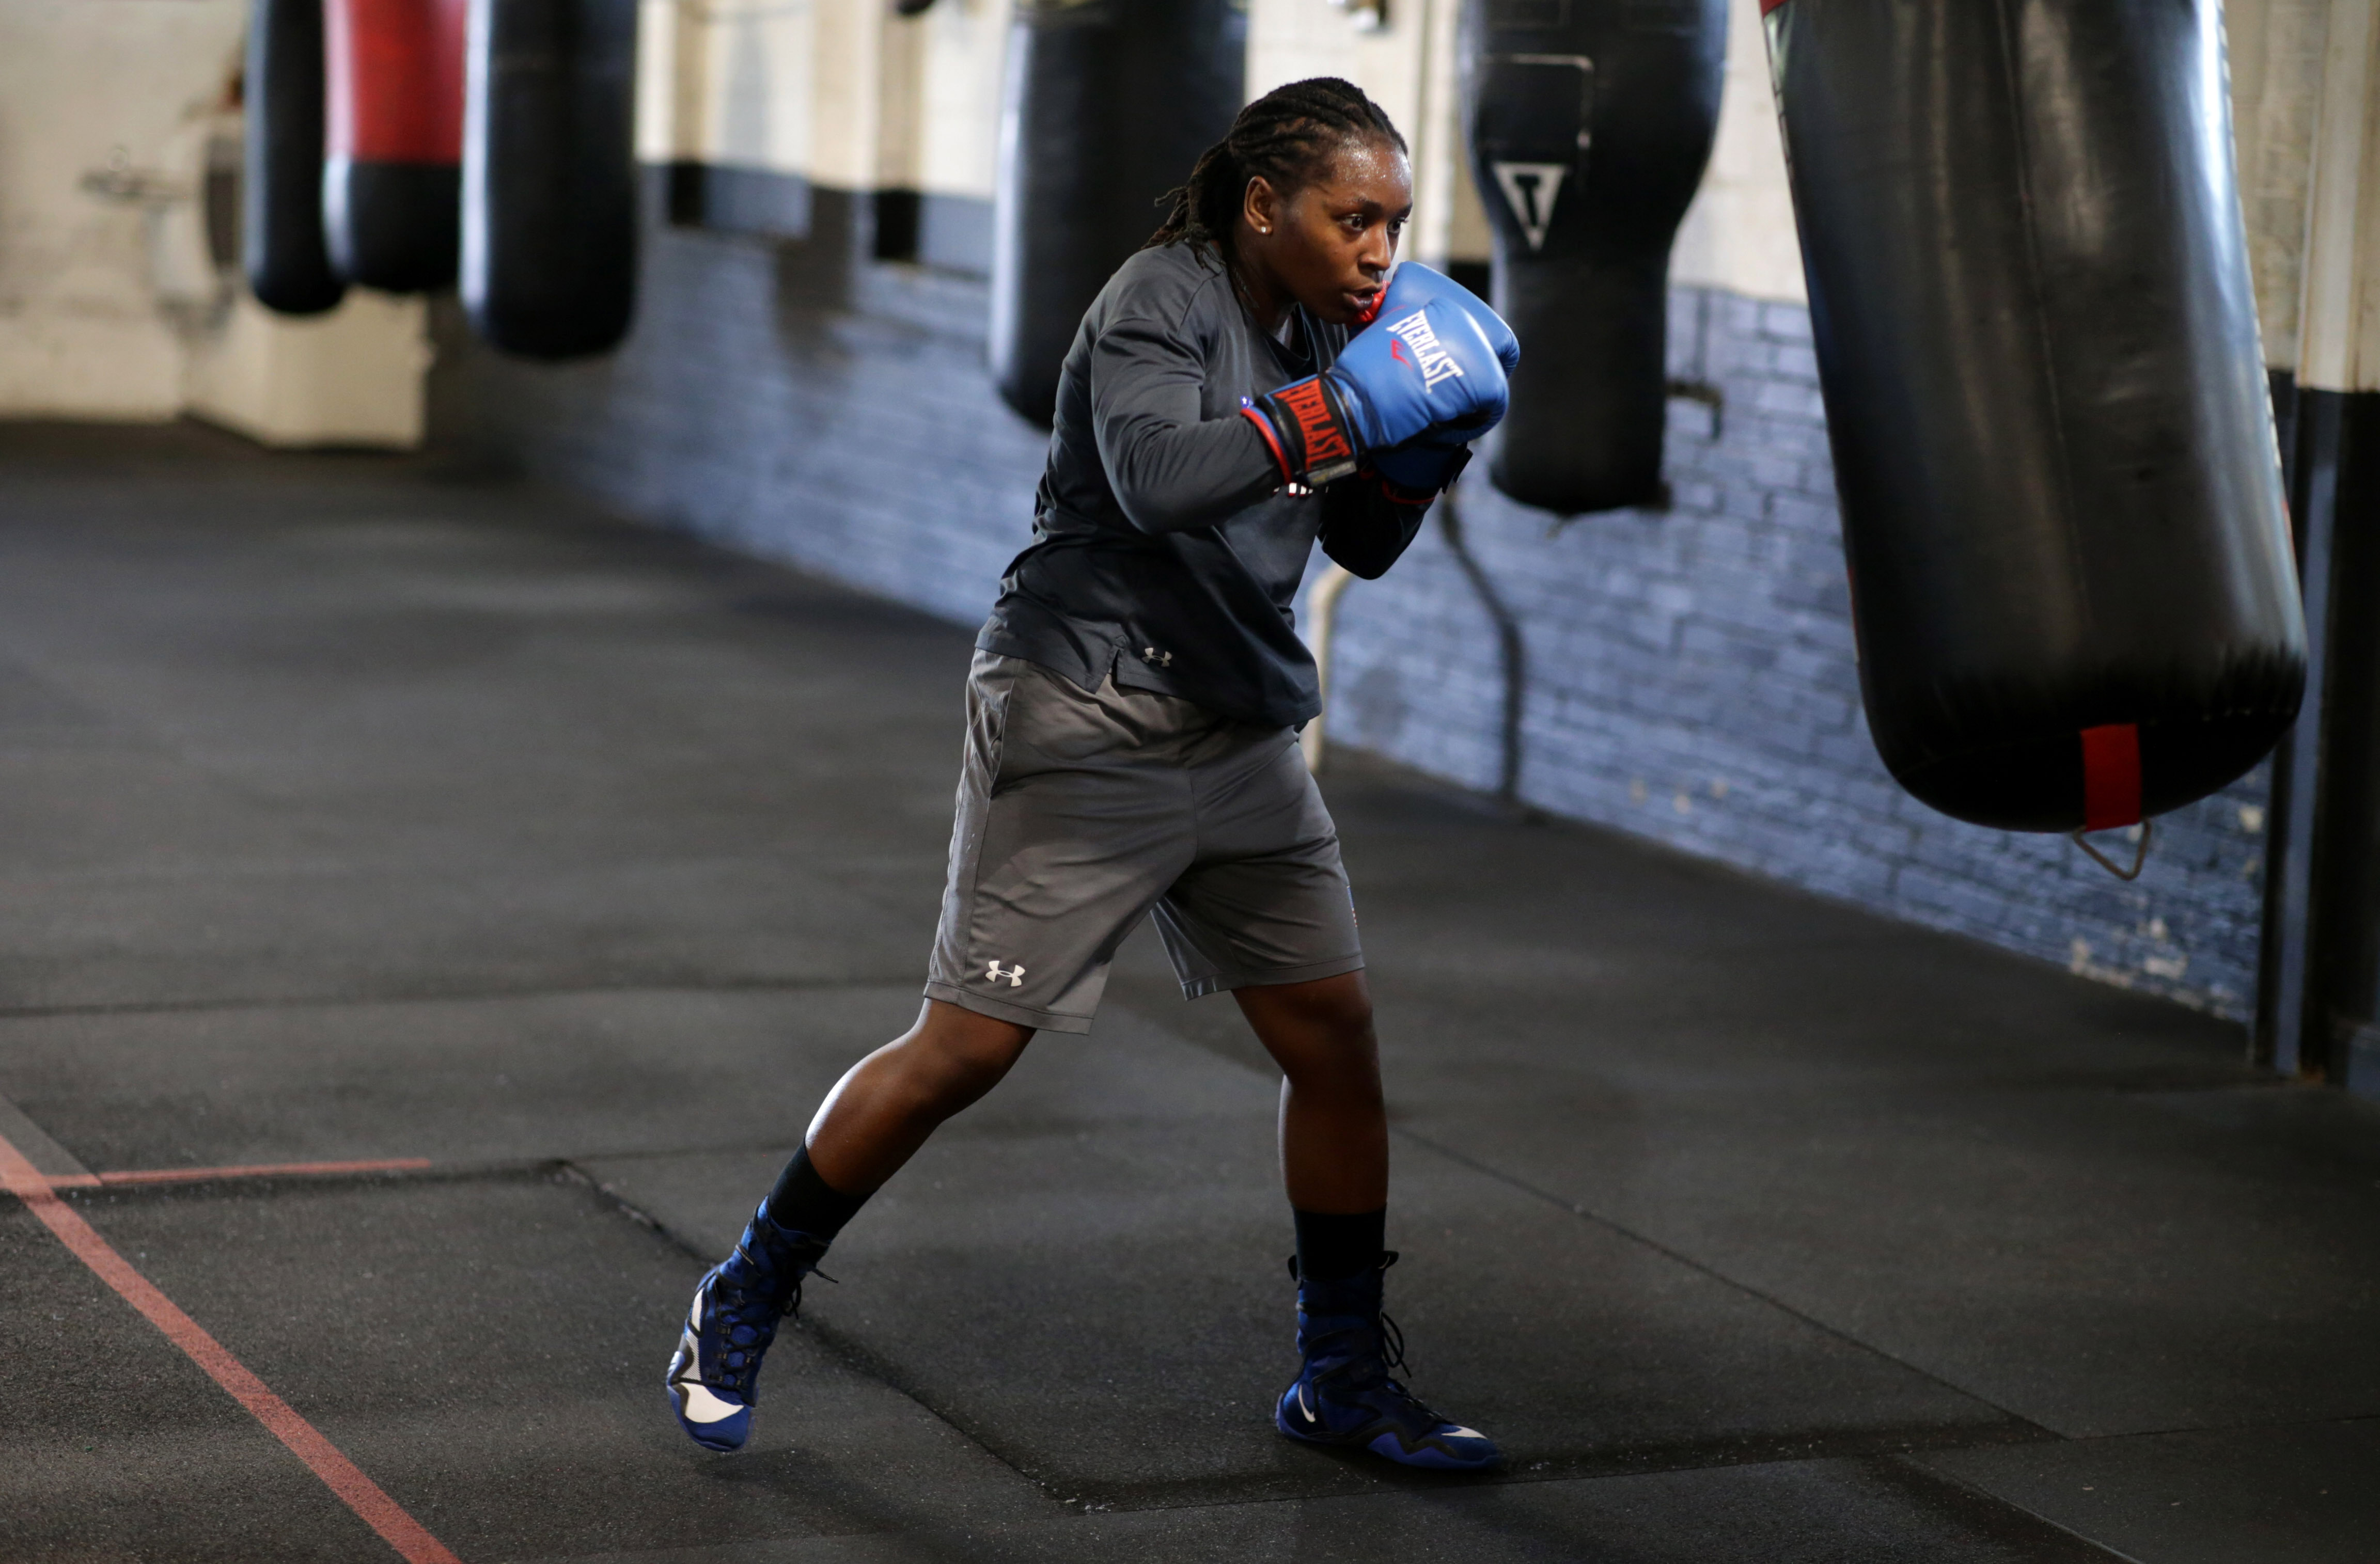 Ellis got her start sparring in Lynn, and is now a favorite to win gold in Tokyo next month.